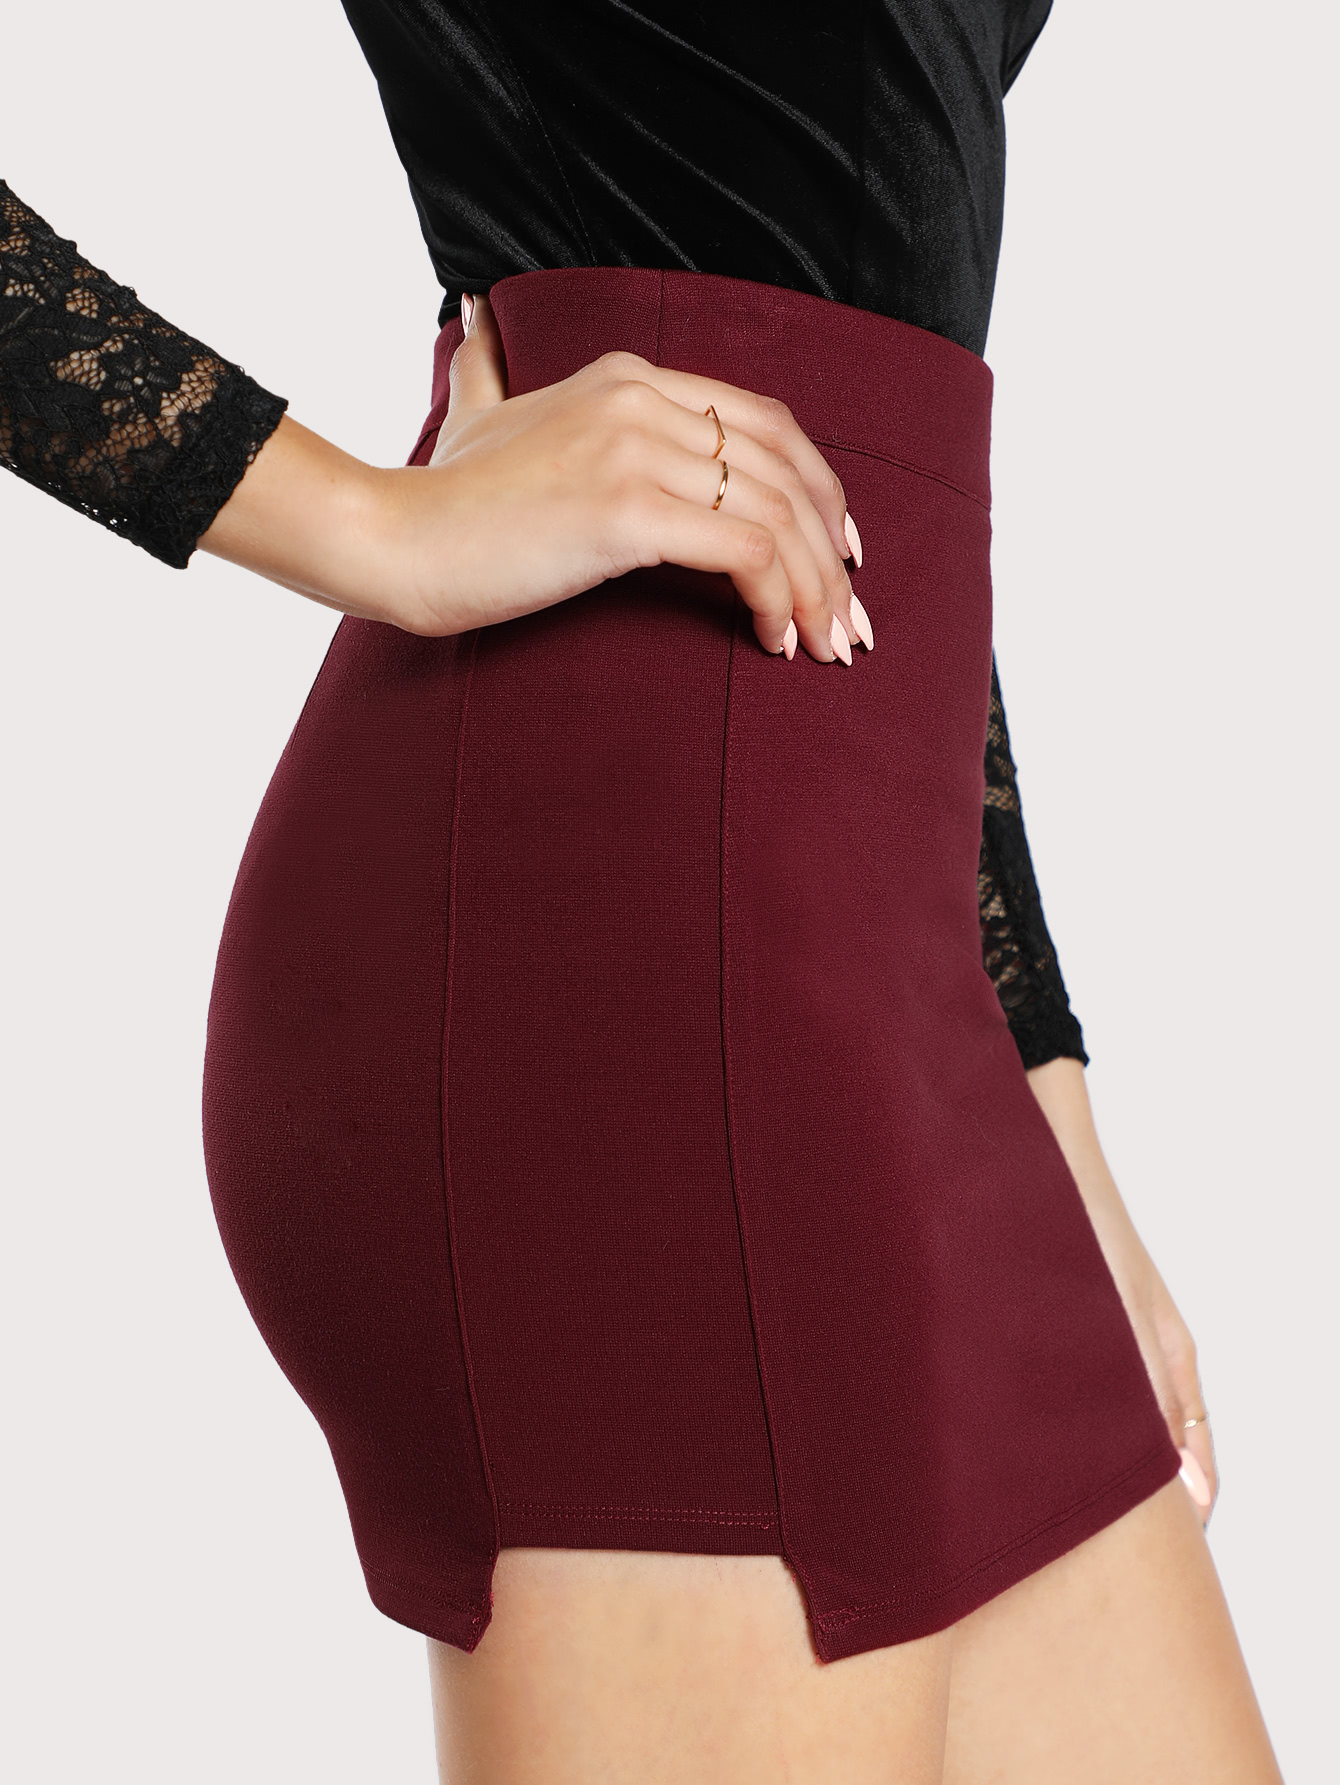 Solid Knit Bodycon Skirt solid ruched knit skirt